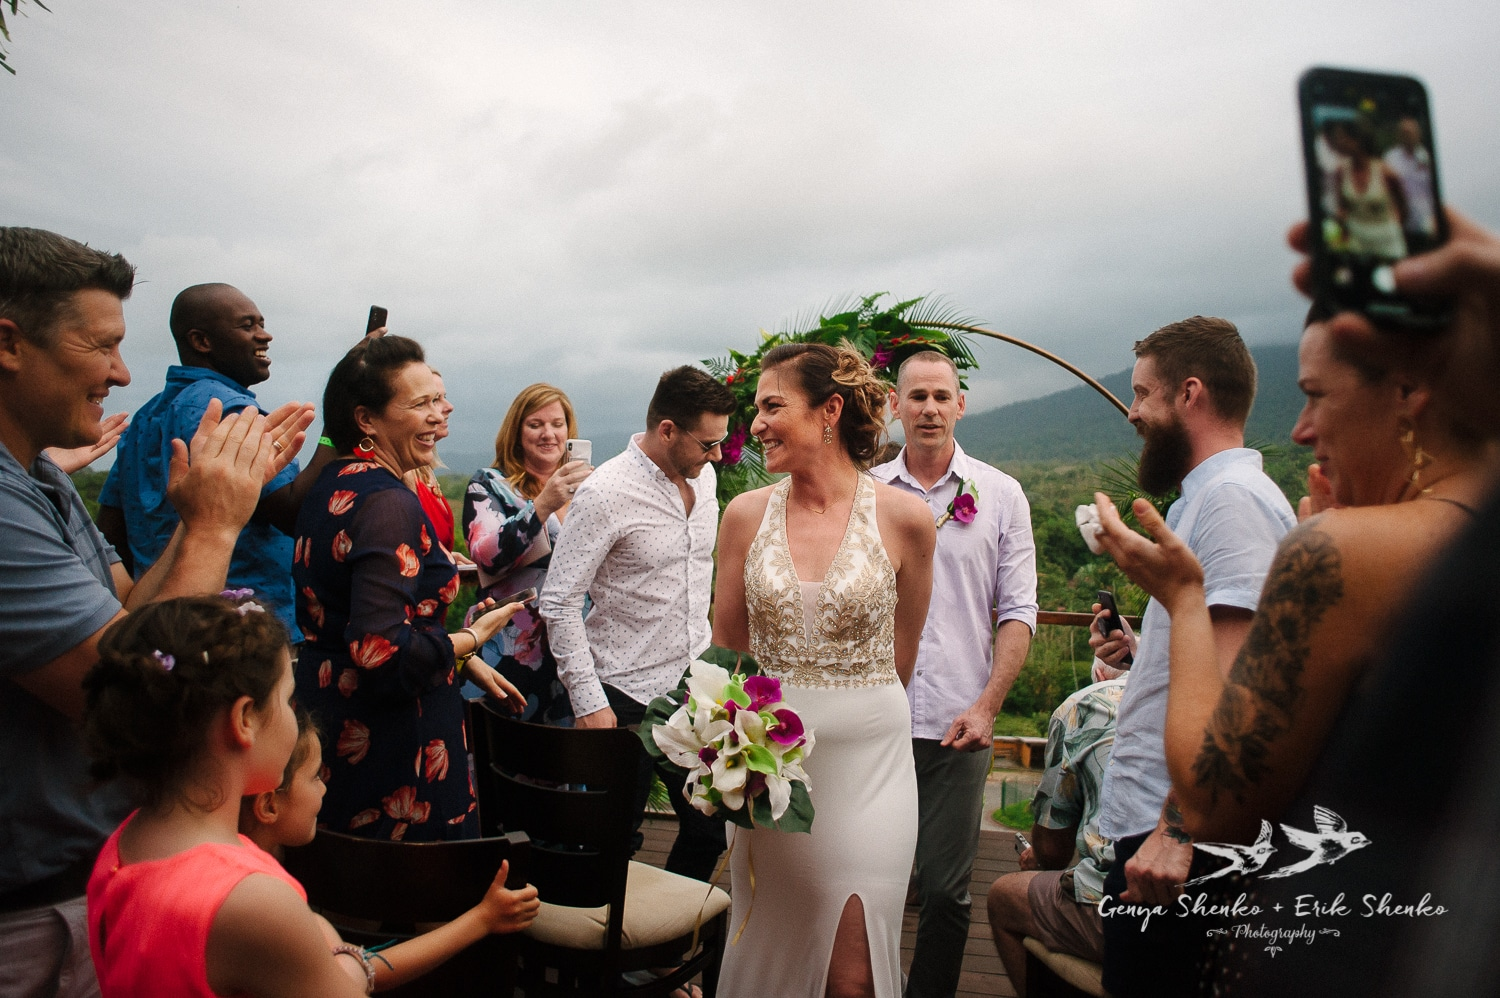 Arenal Koita Costa Rica Wedding Photographer